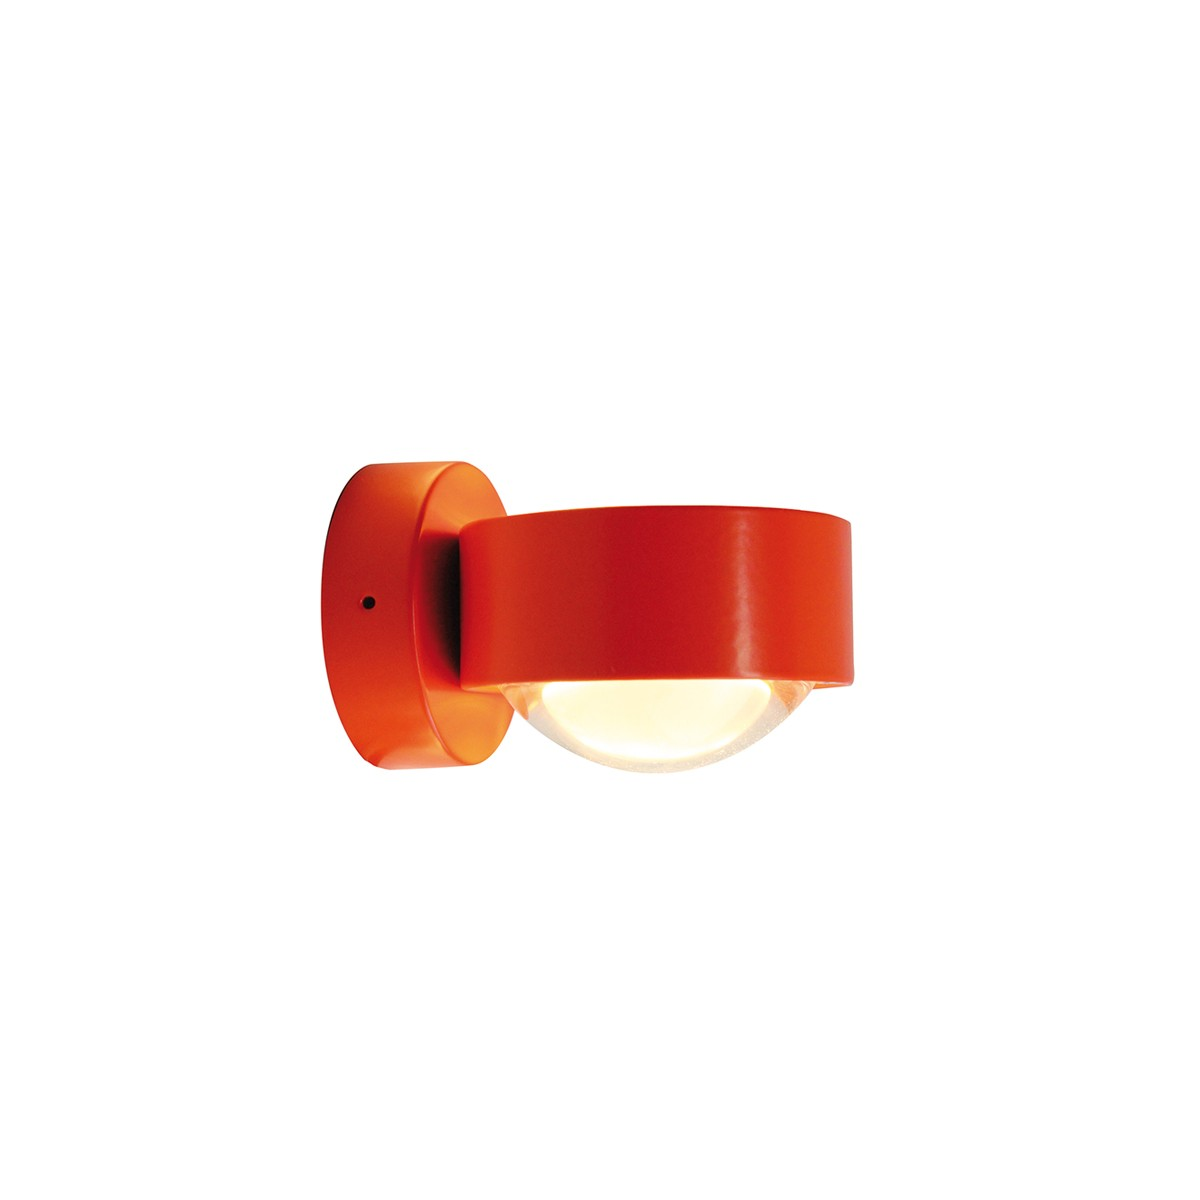 Top Light Puk Wall Wandleuchte, orange